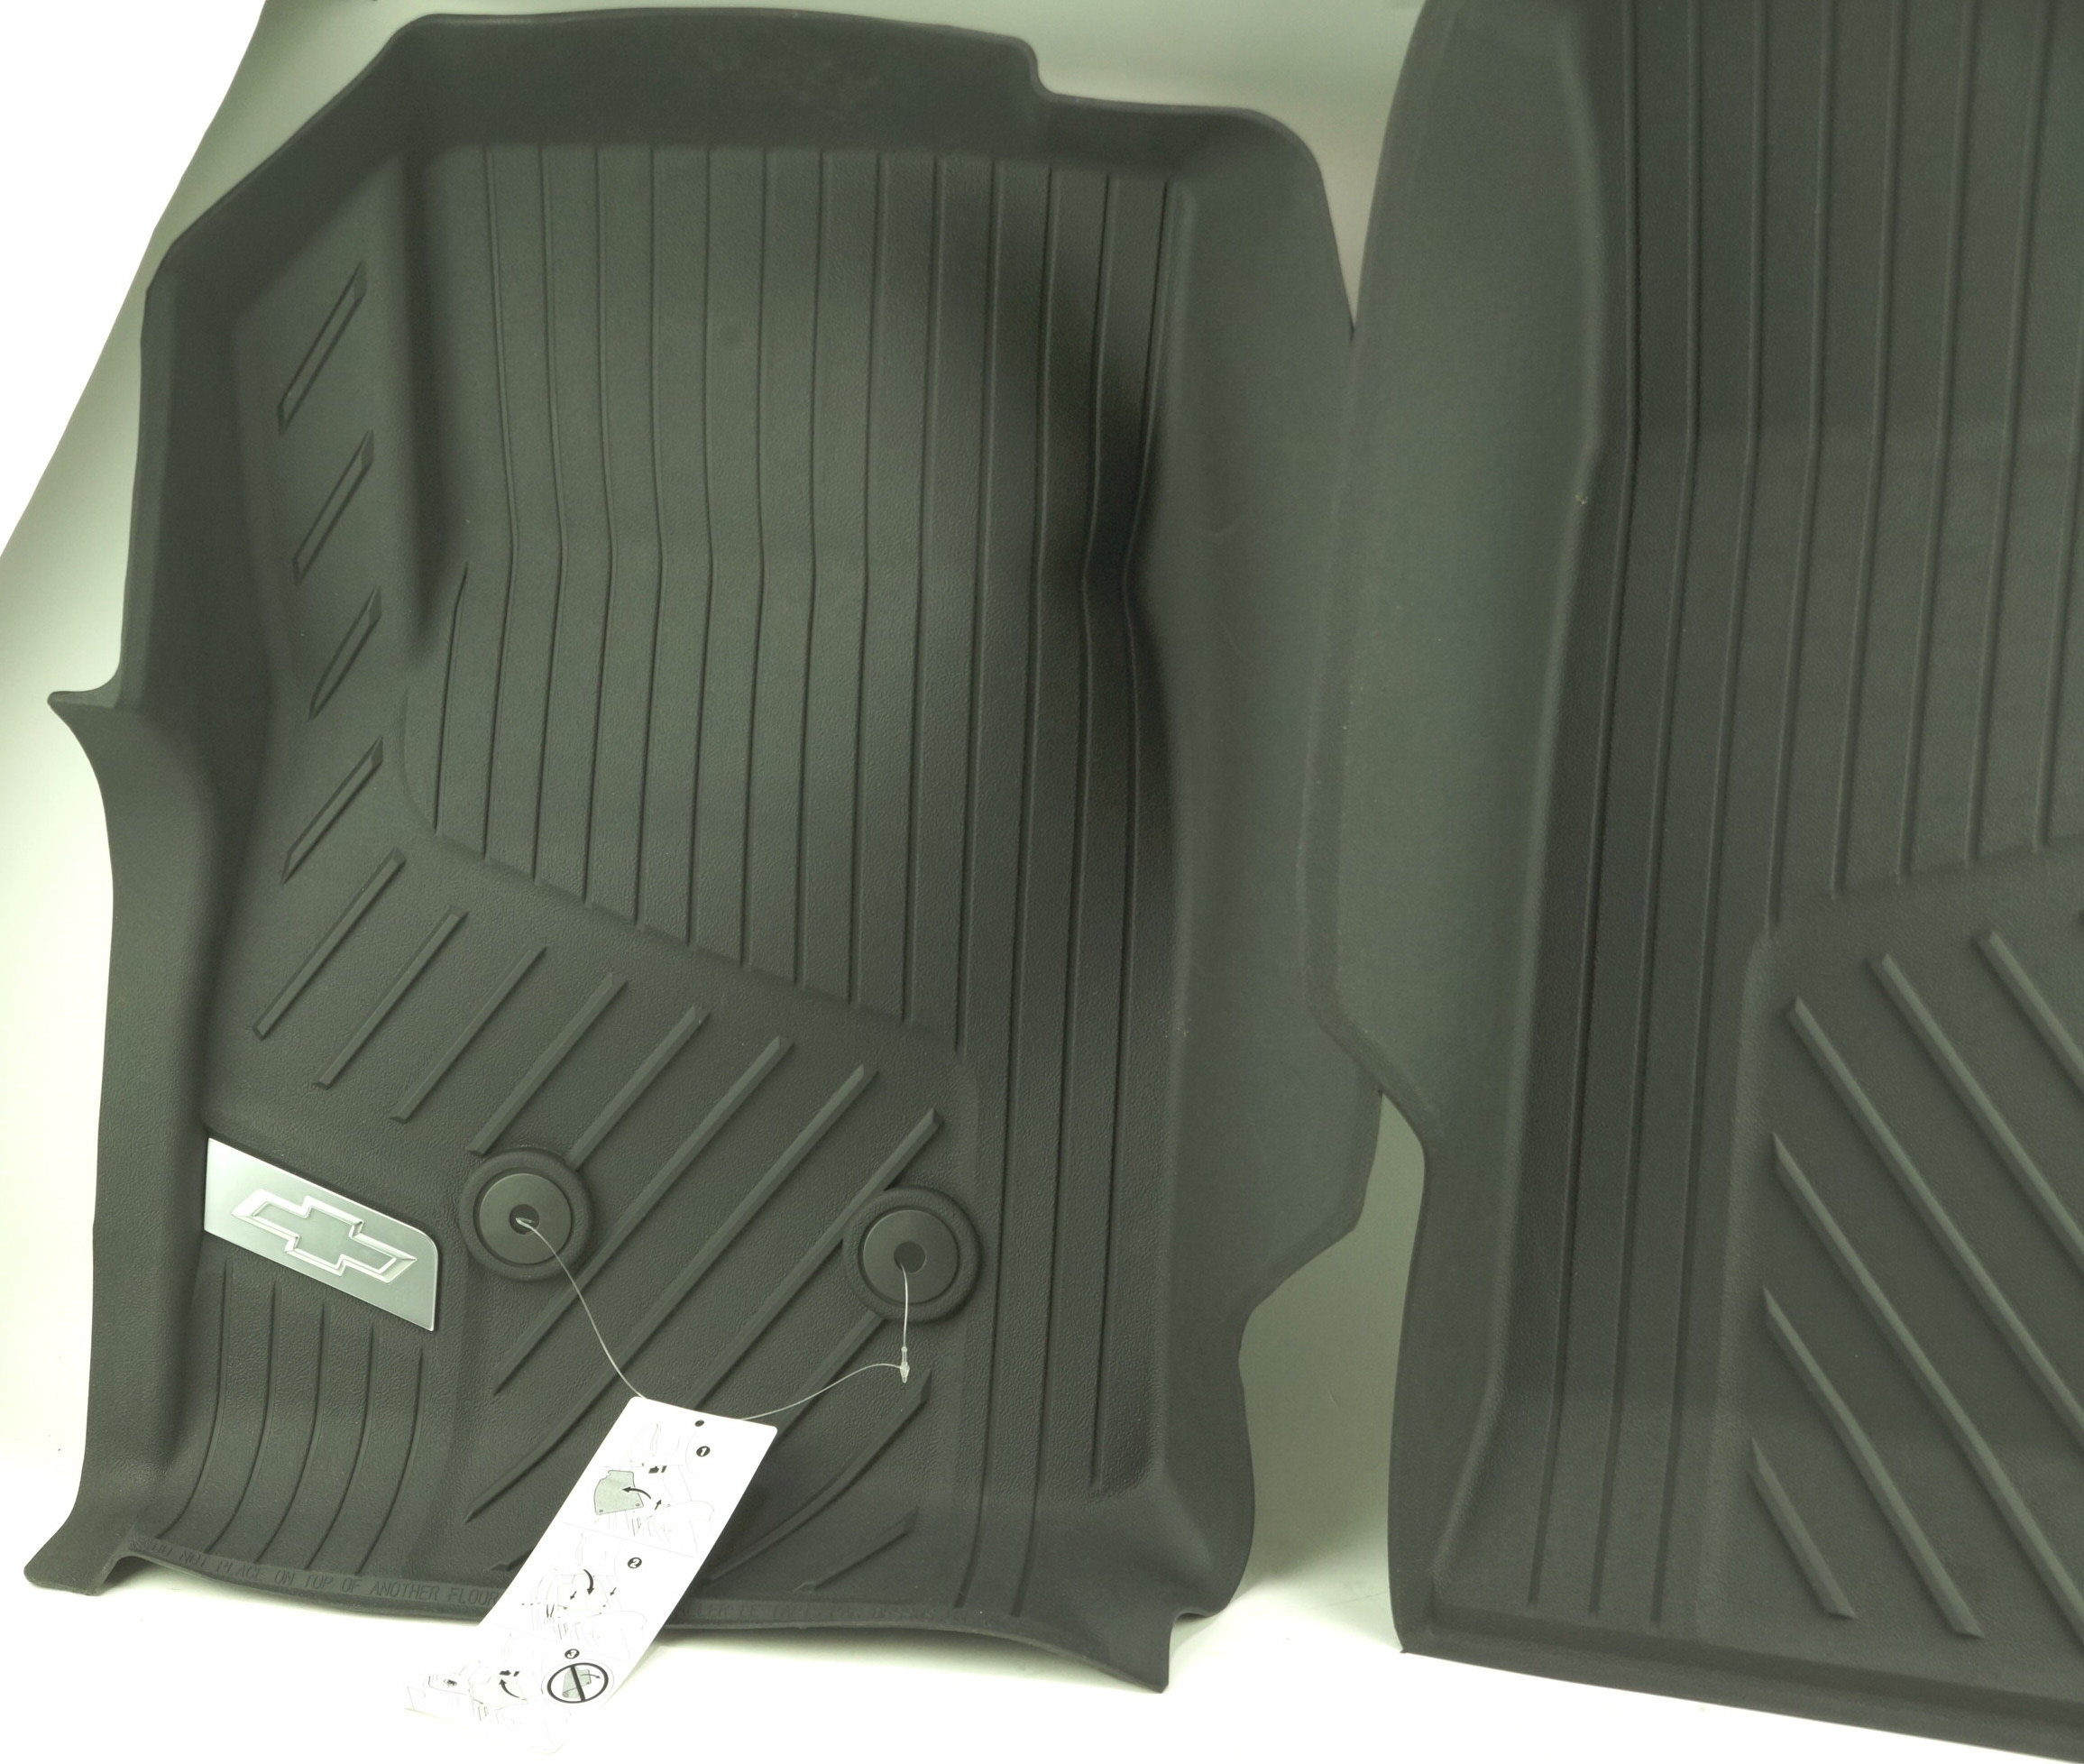 New OEM 84370633 GM 15-21 Colorado Front All Weather Floor Liners Black w/Bowtie - image 2